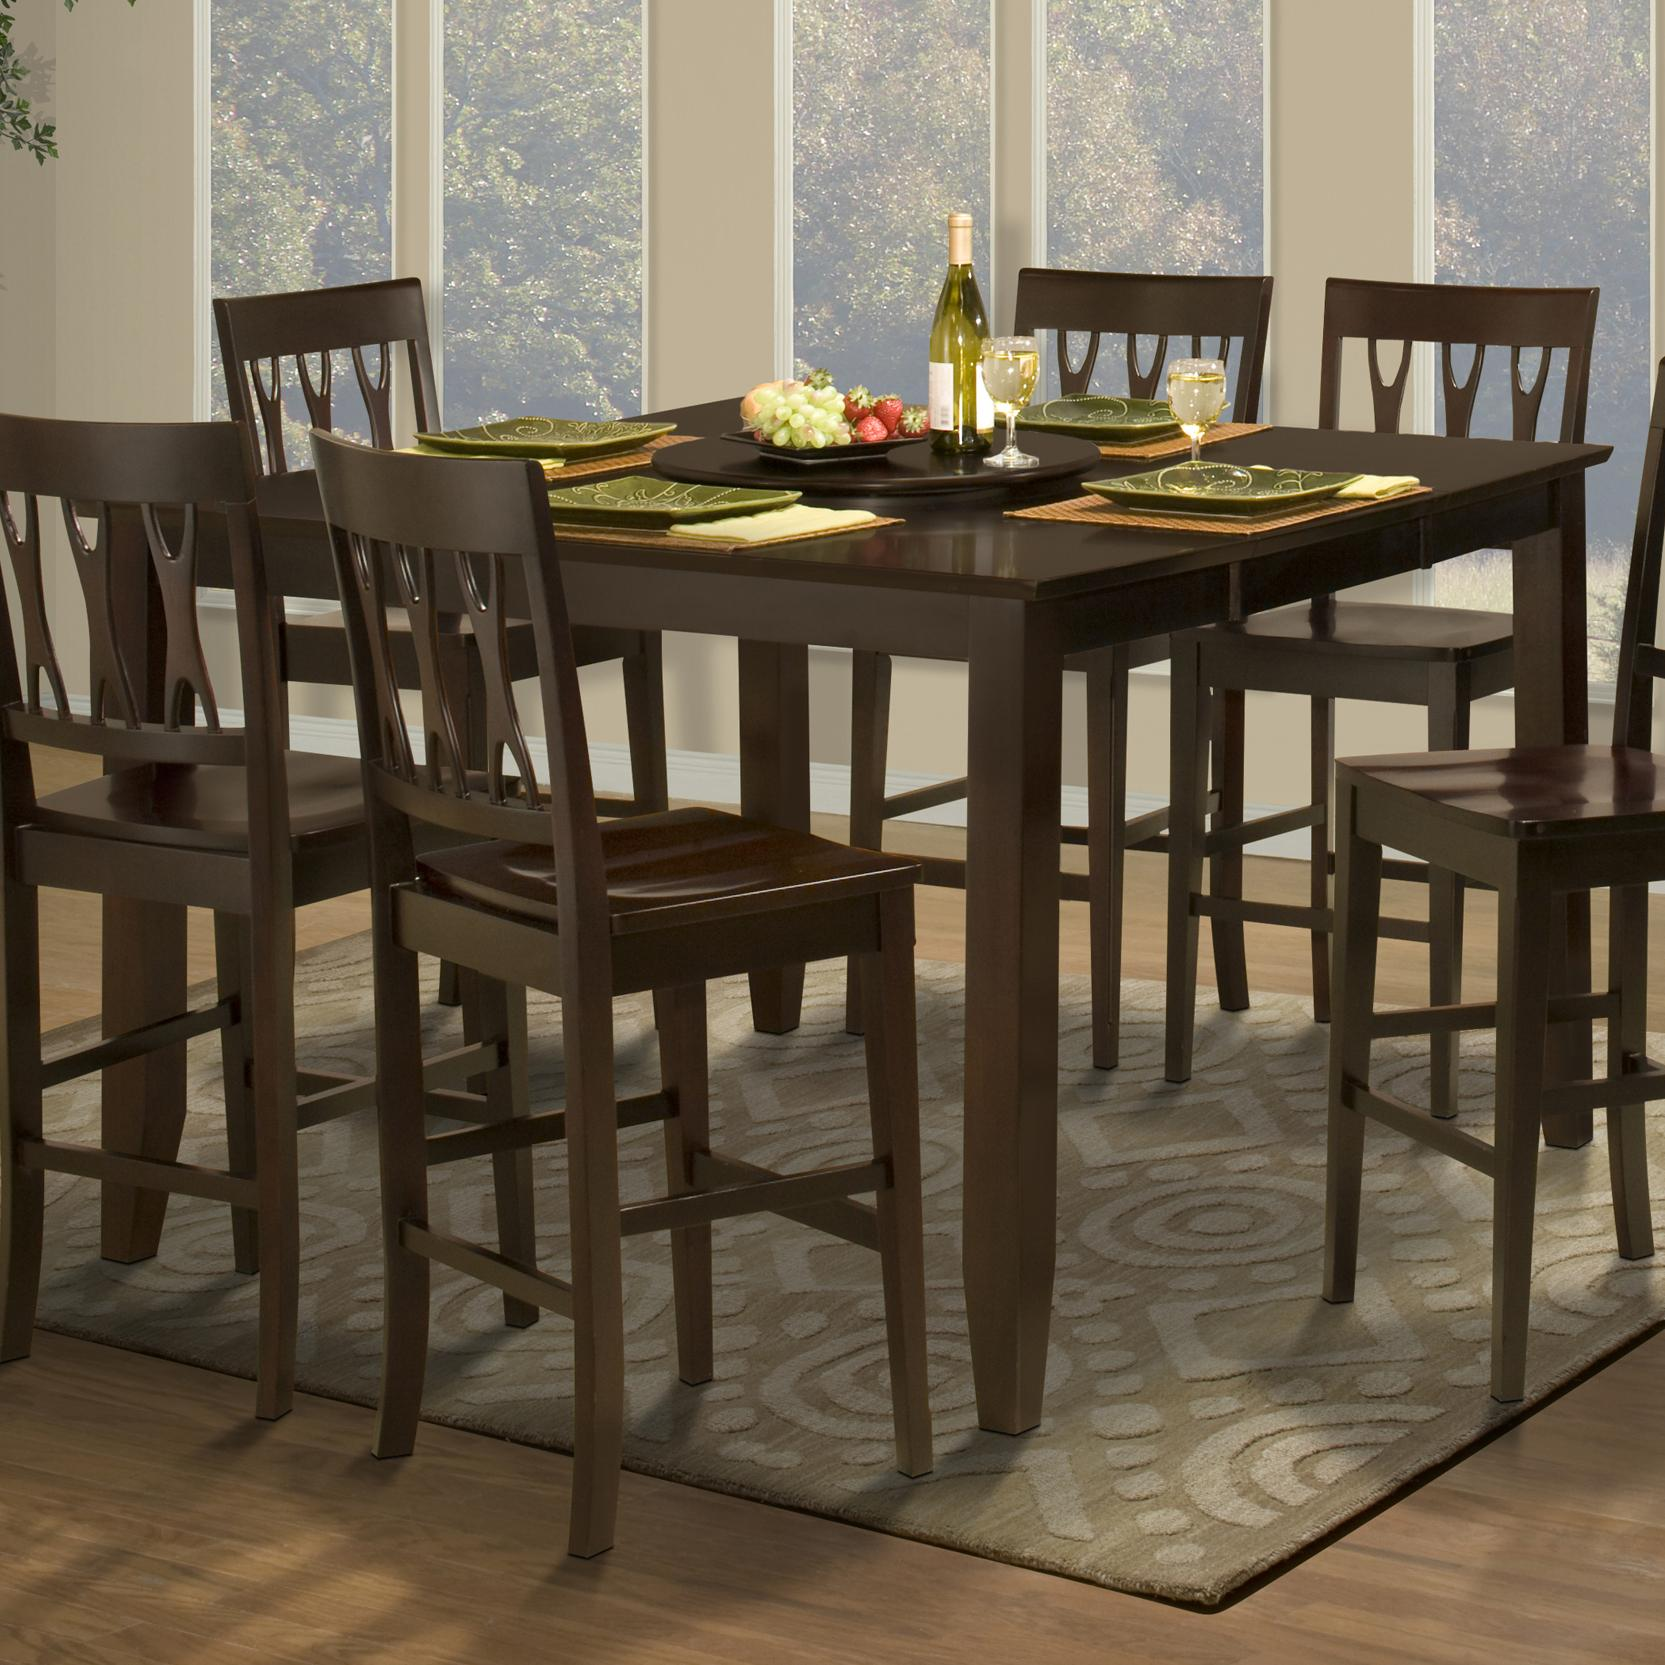 New Classic Style 19 Counter Height Dining Table - Item Number: 45-006-11